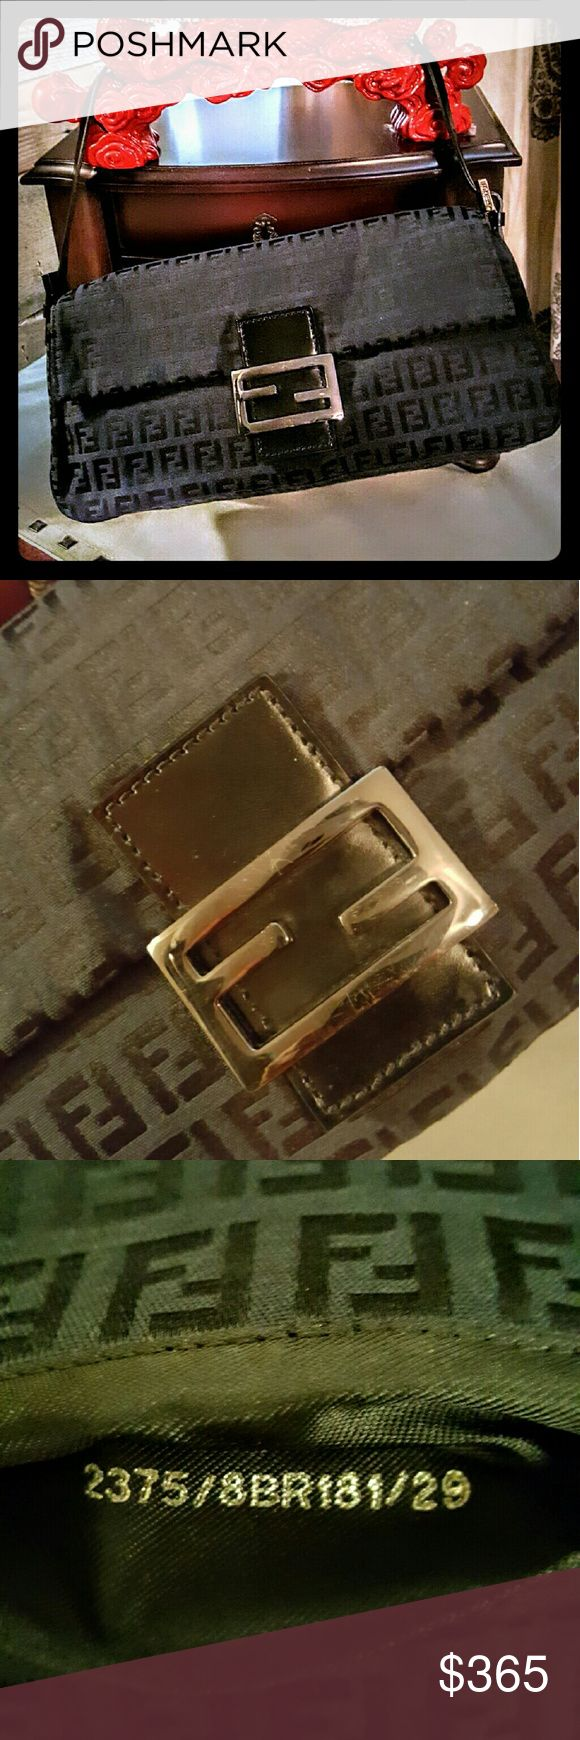 """FENDI ZUCCA BAGUETTE CLUTCH 100% AUTHENTIC FENDI BAG CLASSIC BLACK SILVER/BLACK HARD WARE SIZE 11.5"""" LONG X 5.5"""" TALL X 3.5"""" DEEP INSIDE SMALL OPEN POCKET MAGNETIC CLOSURE MINOR SCRATCHES ON FRONT CLASP GENTLY USED OVERALL EXCELLENT CONDITION! MEDIUM MINI ZUCCA BAGUETTE CLUTCH SMOOTH GRAIN LEATHER STRAP FENDI ZUCCA PRINT THROUGHOUT ADJUSTABLE THIN STRAP NEVER GOES OUT OF STYLE! SERIOUS BUYERS ONLY *NO TRADES NO RETURNS PLEASE ASK QUESTIONS* Fendi Bags Clutches & Wristlets"""